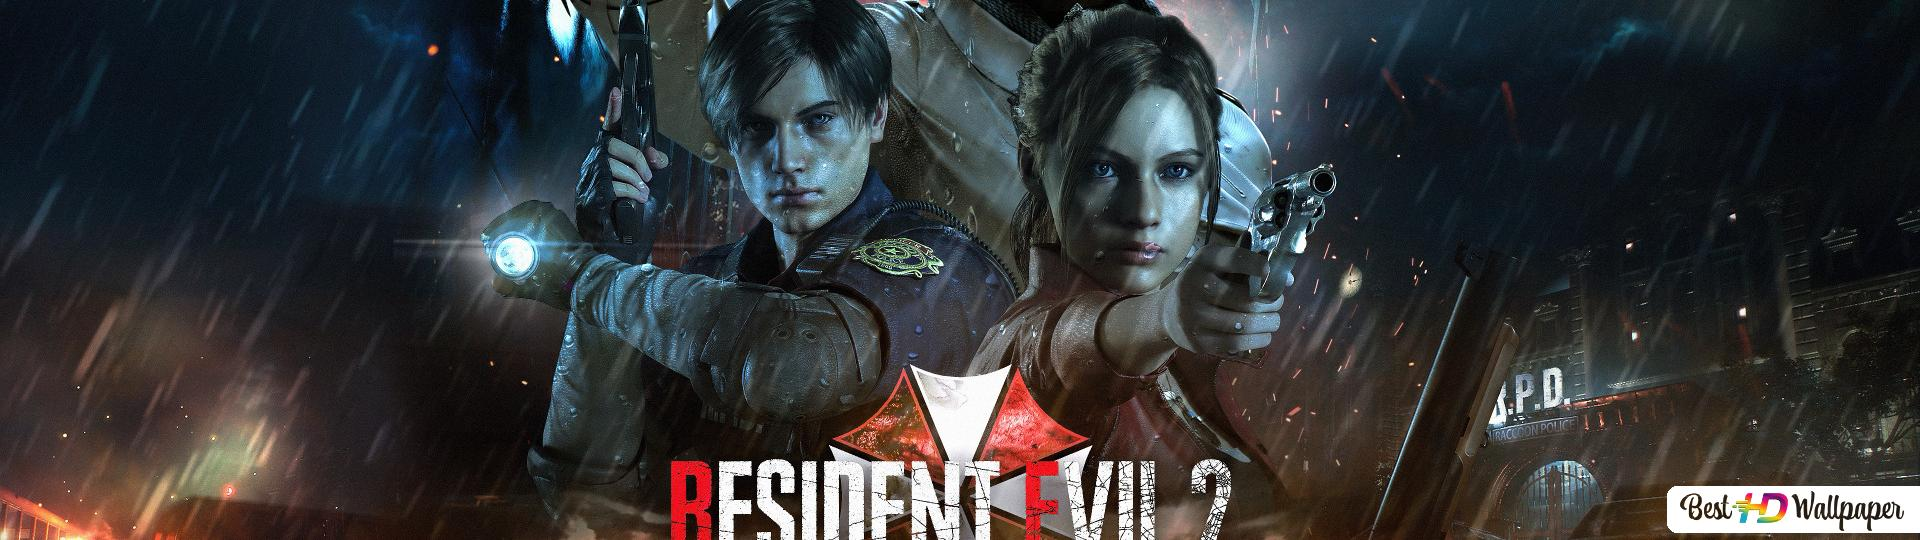 Resident Evil 2 Remake Leon S Kennedy Ada Wong Claire Redfield